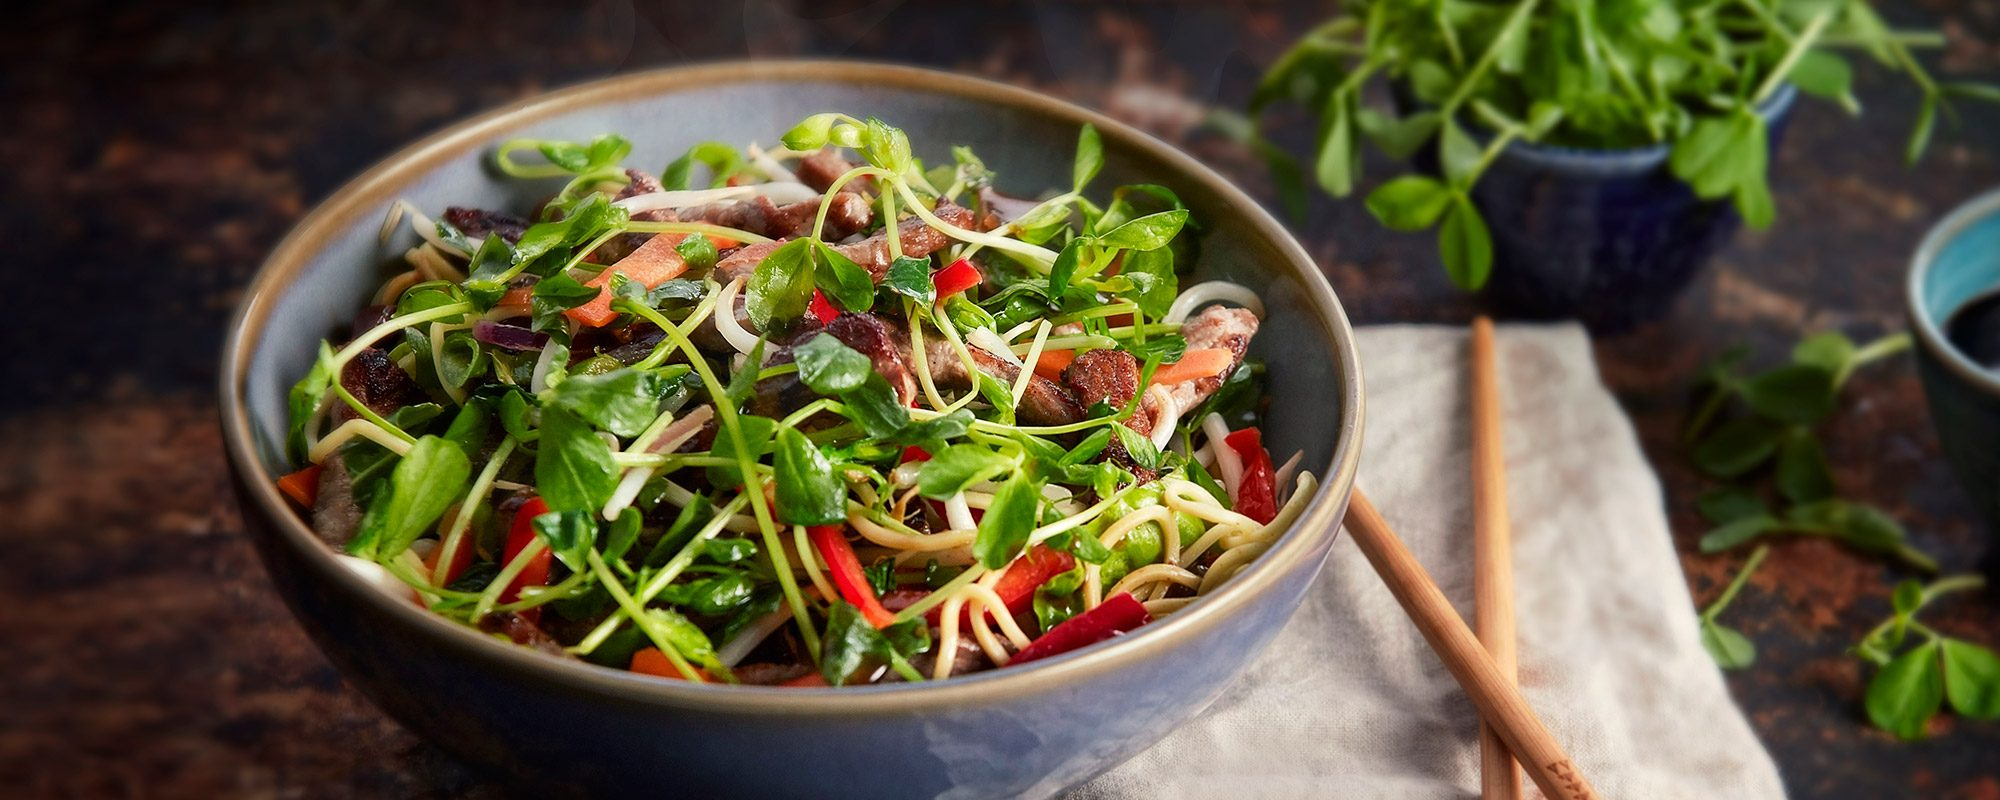 Beef and Peashoots Stir Fry